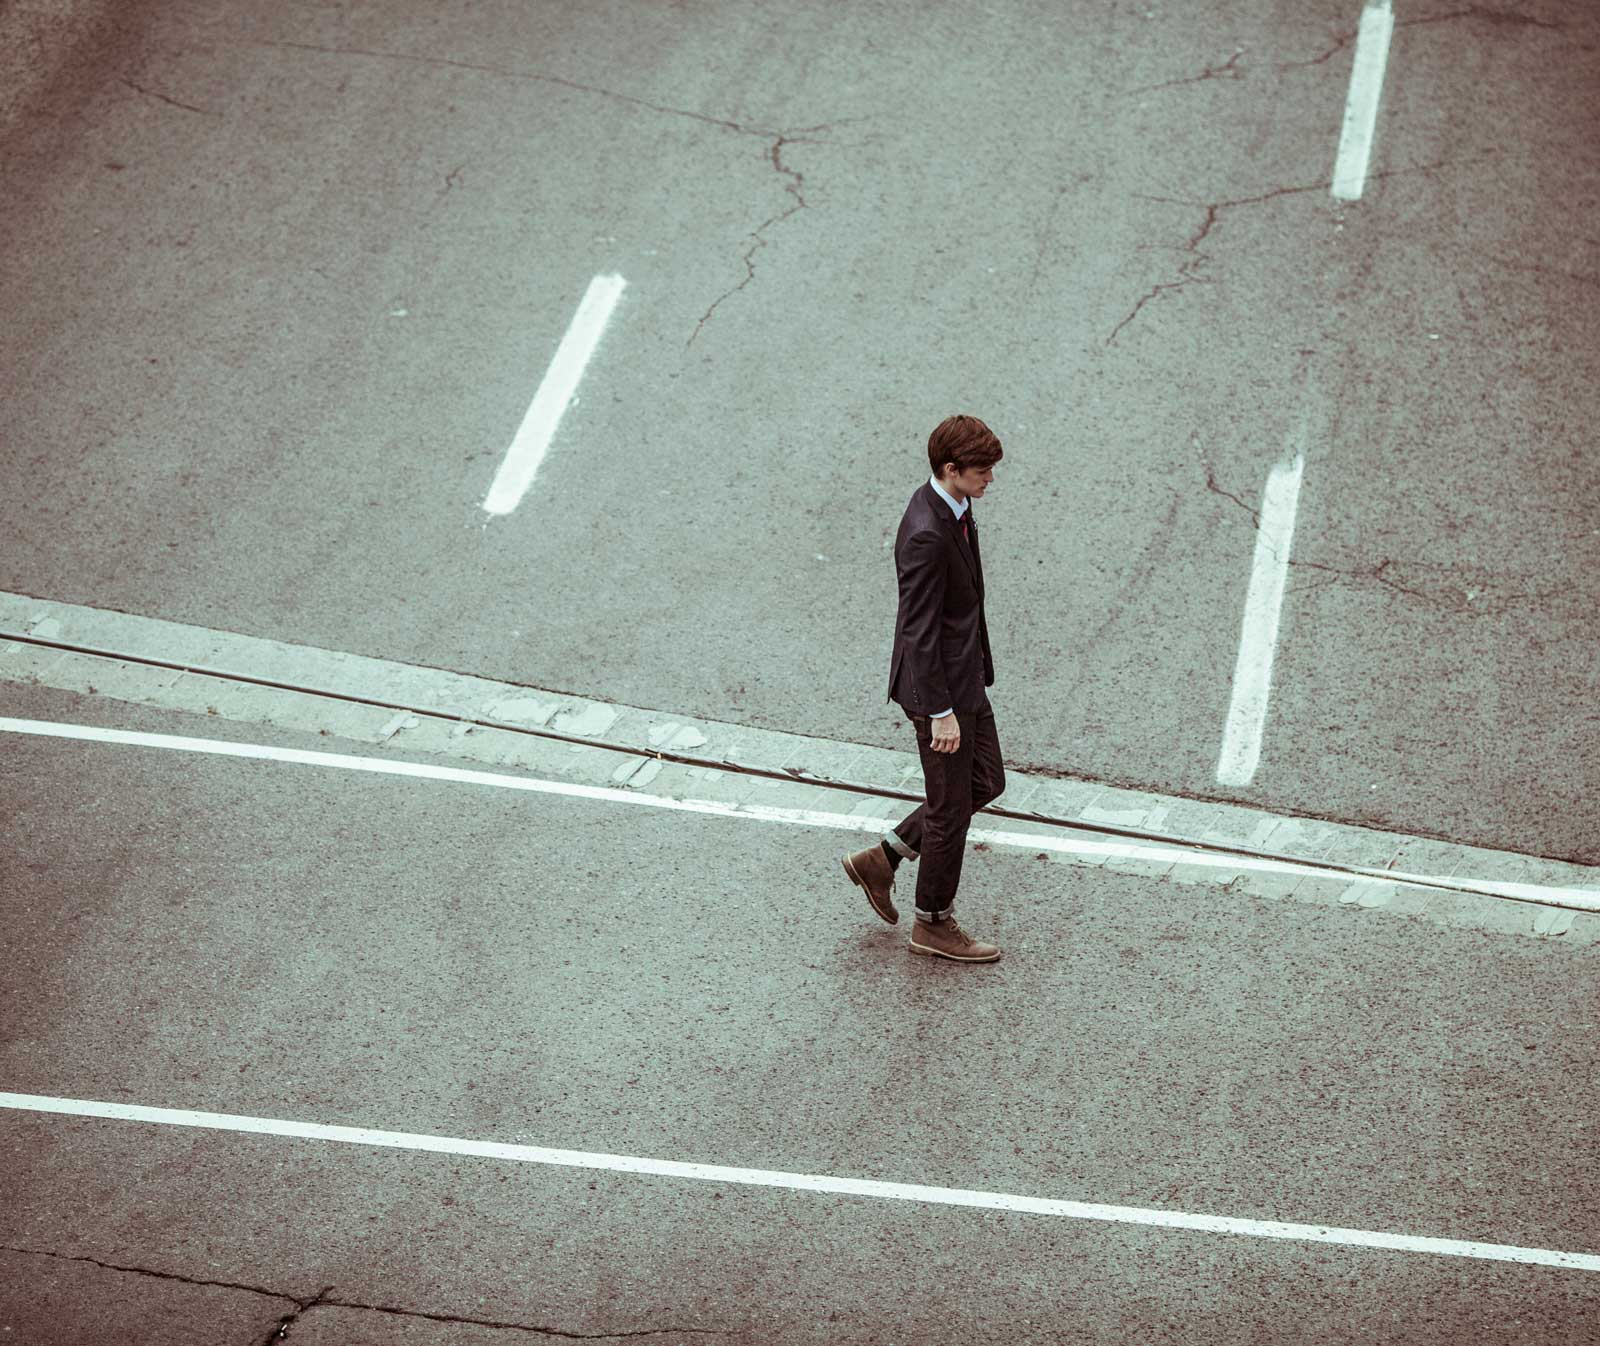 man-walking-in-street